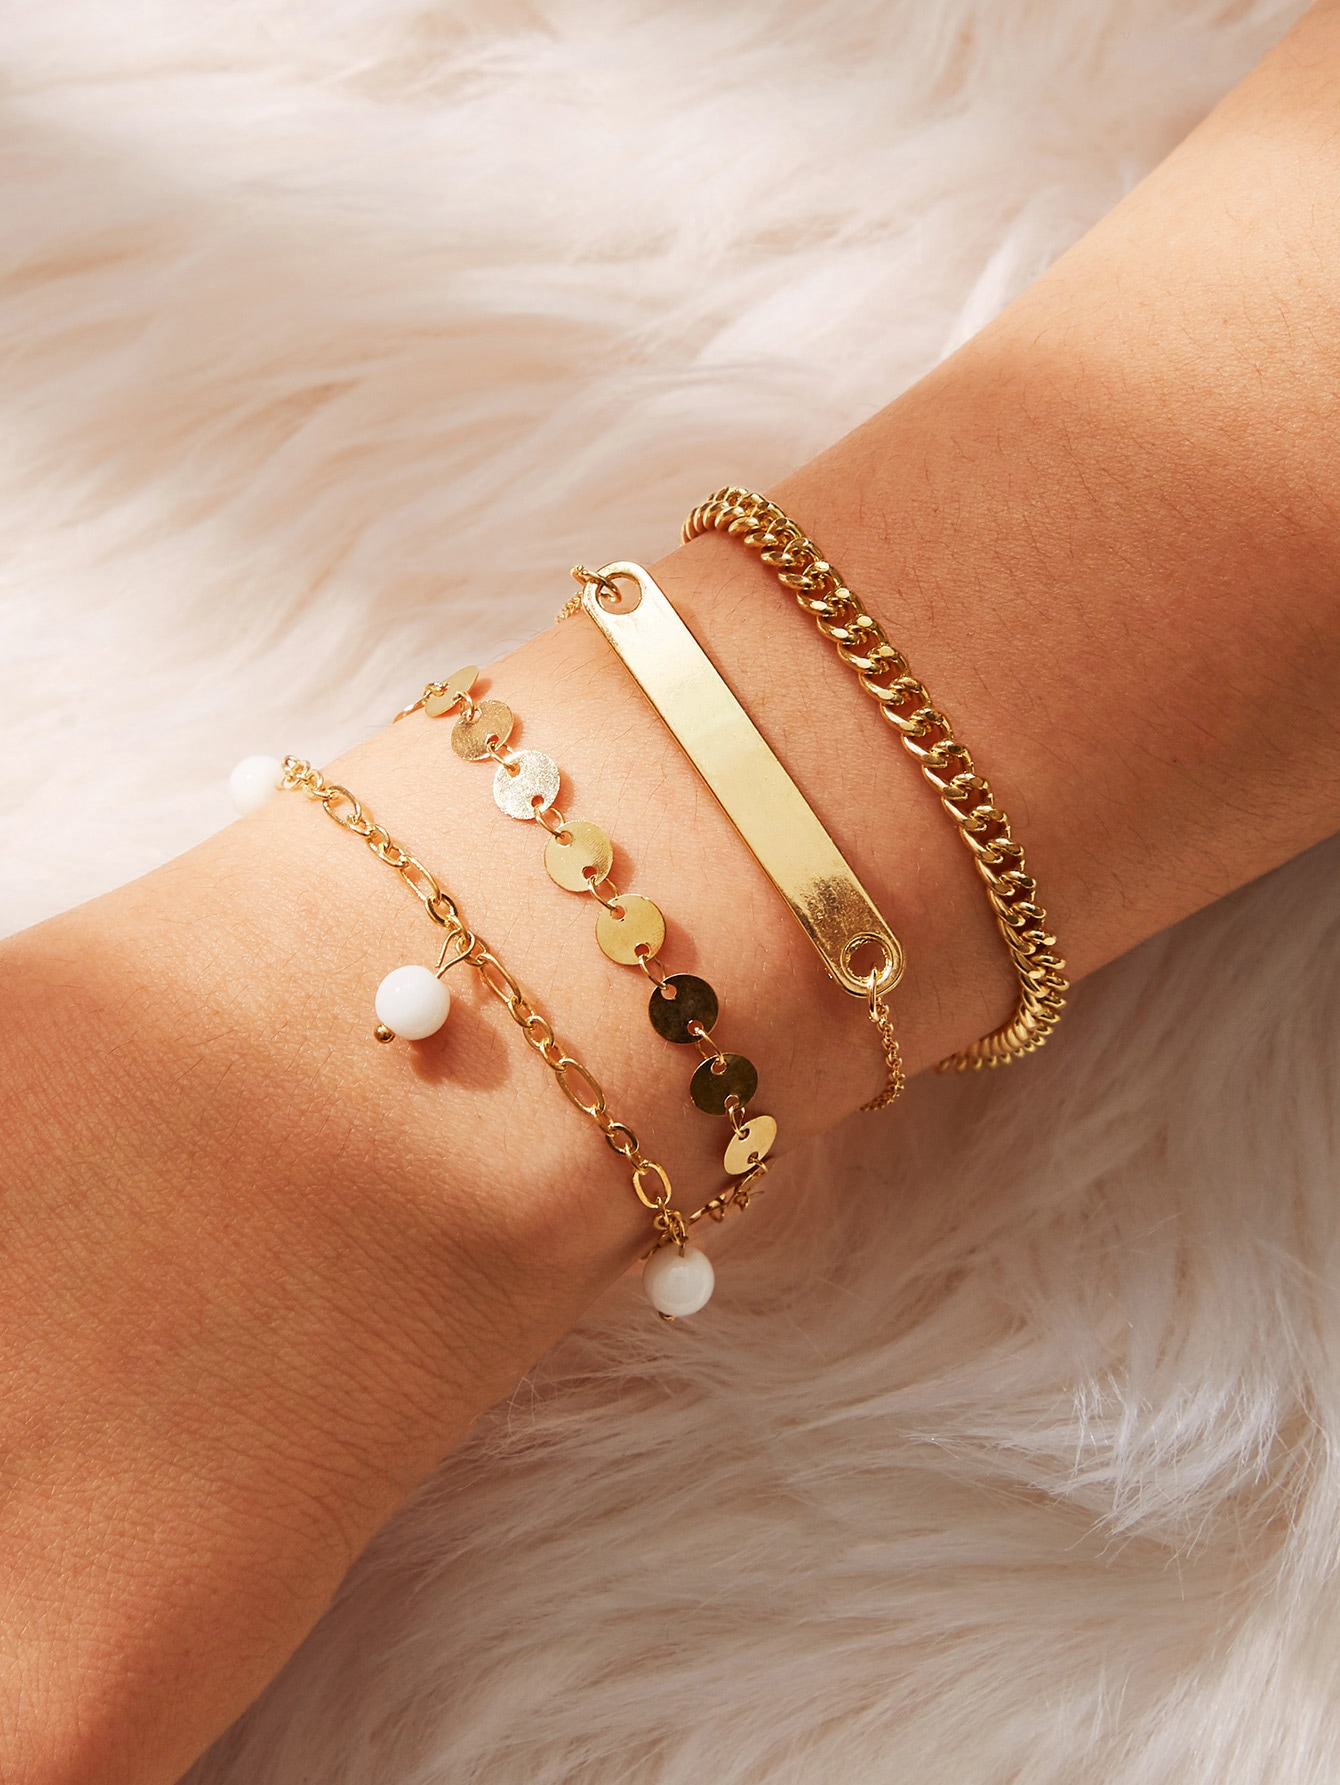 b2d20775cc Bracelets. Compare prices in Etwish.co.uk products list